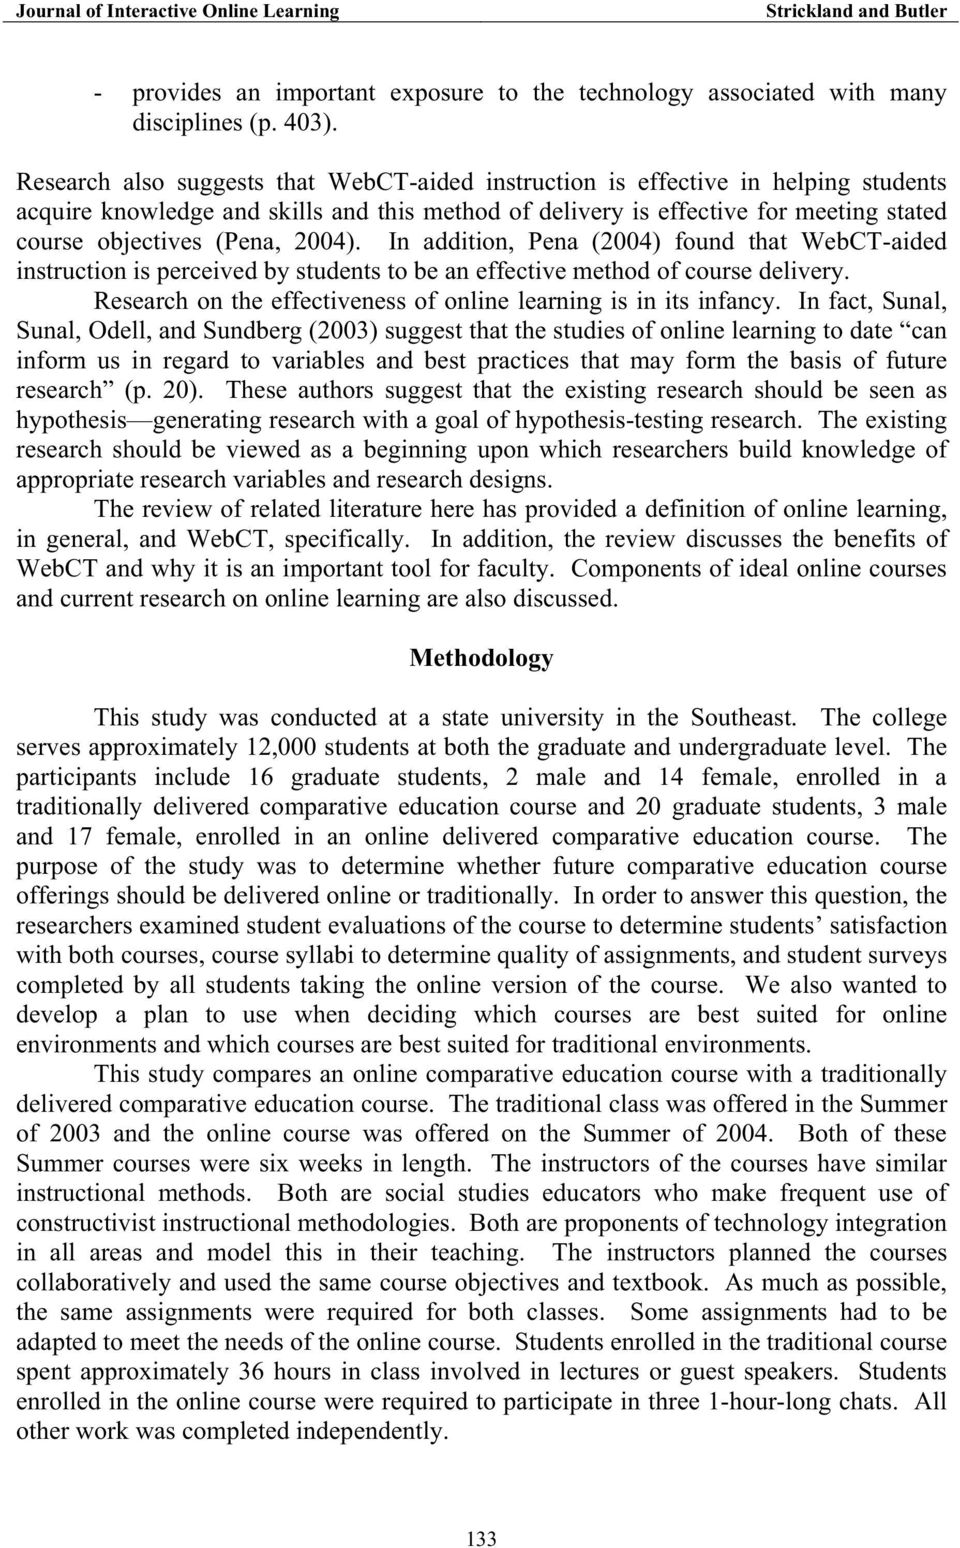 2004). In addition, Pena (2004) found that WebCT-aided instruction is perceived by students to be an effective method of course delivery.